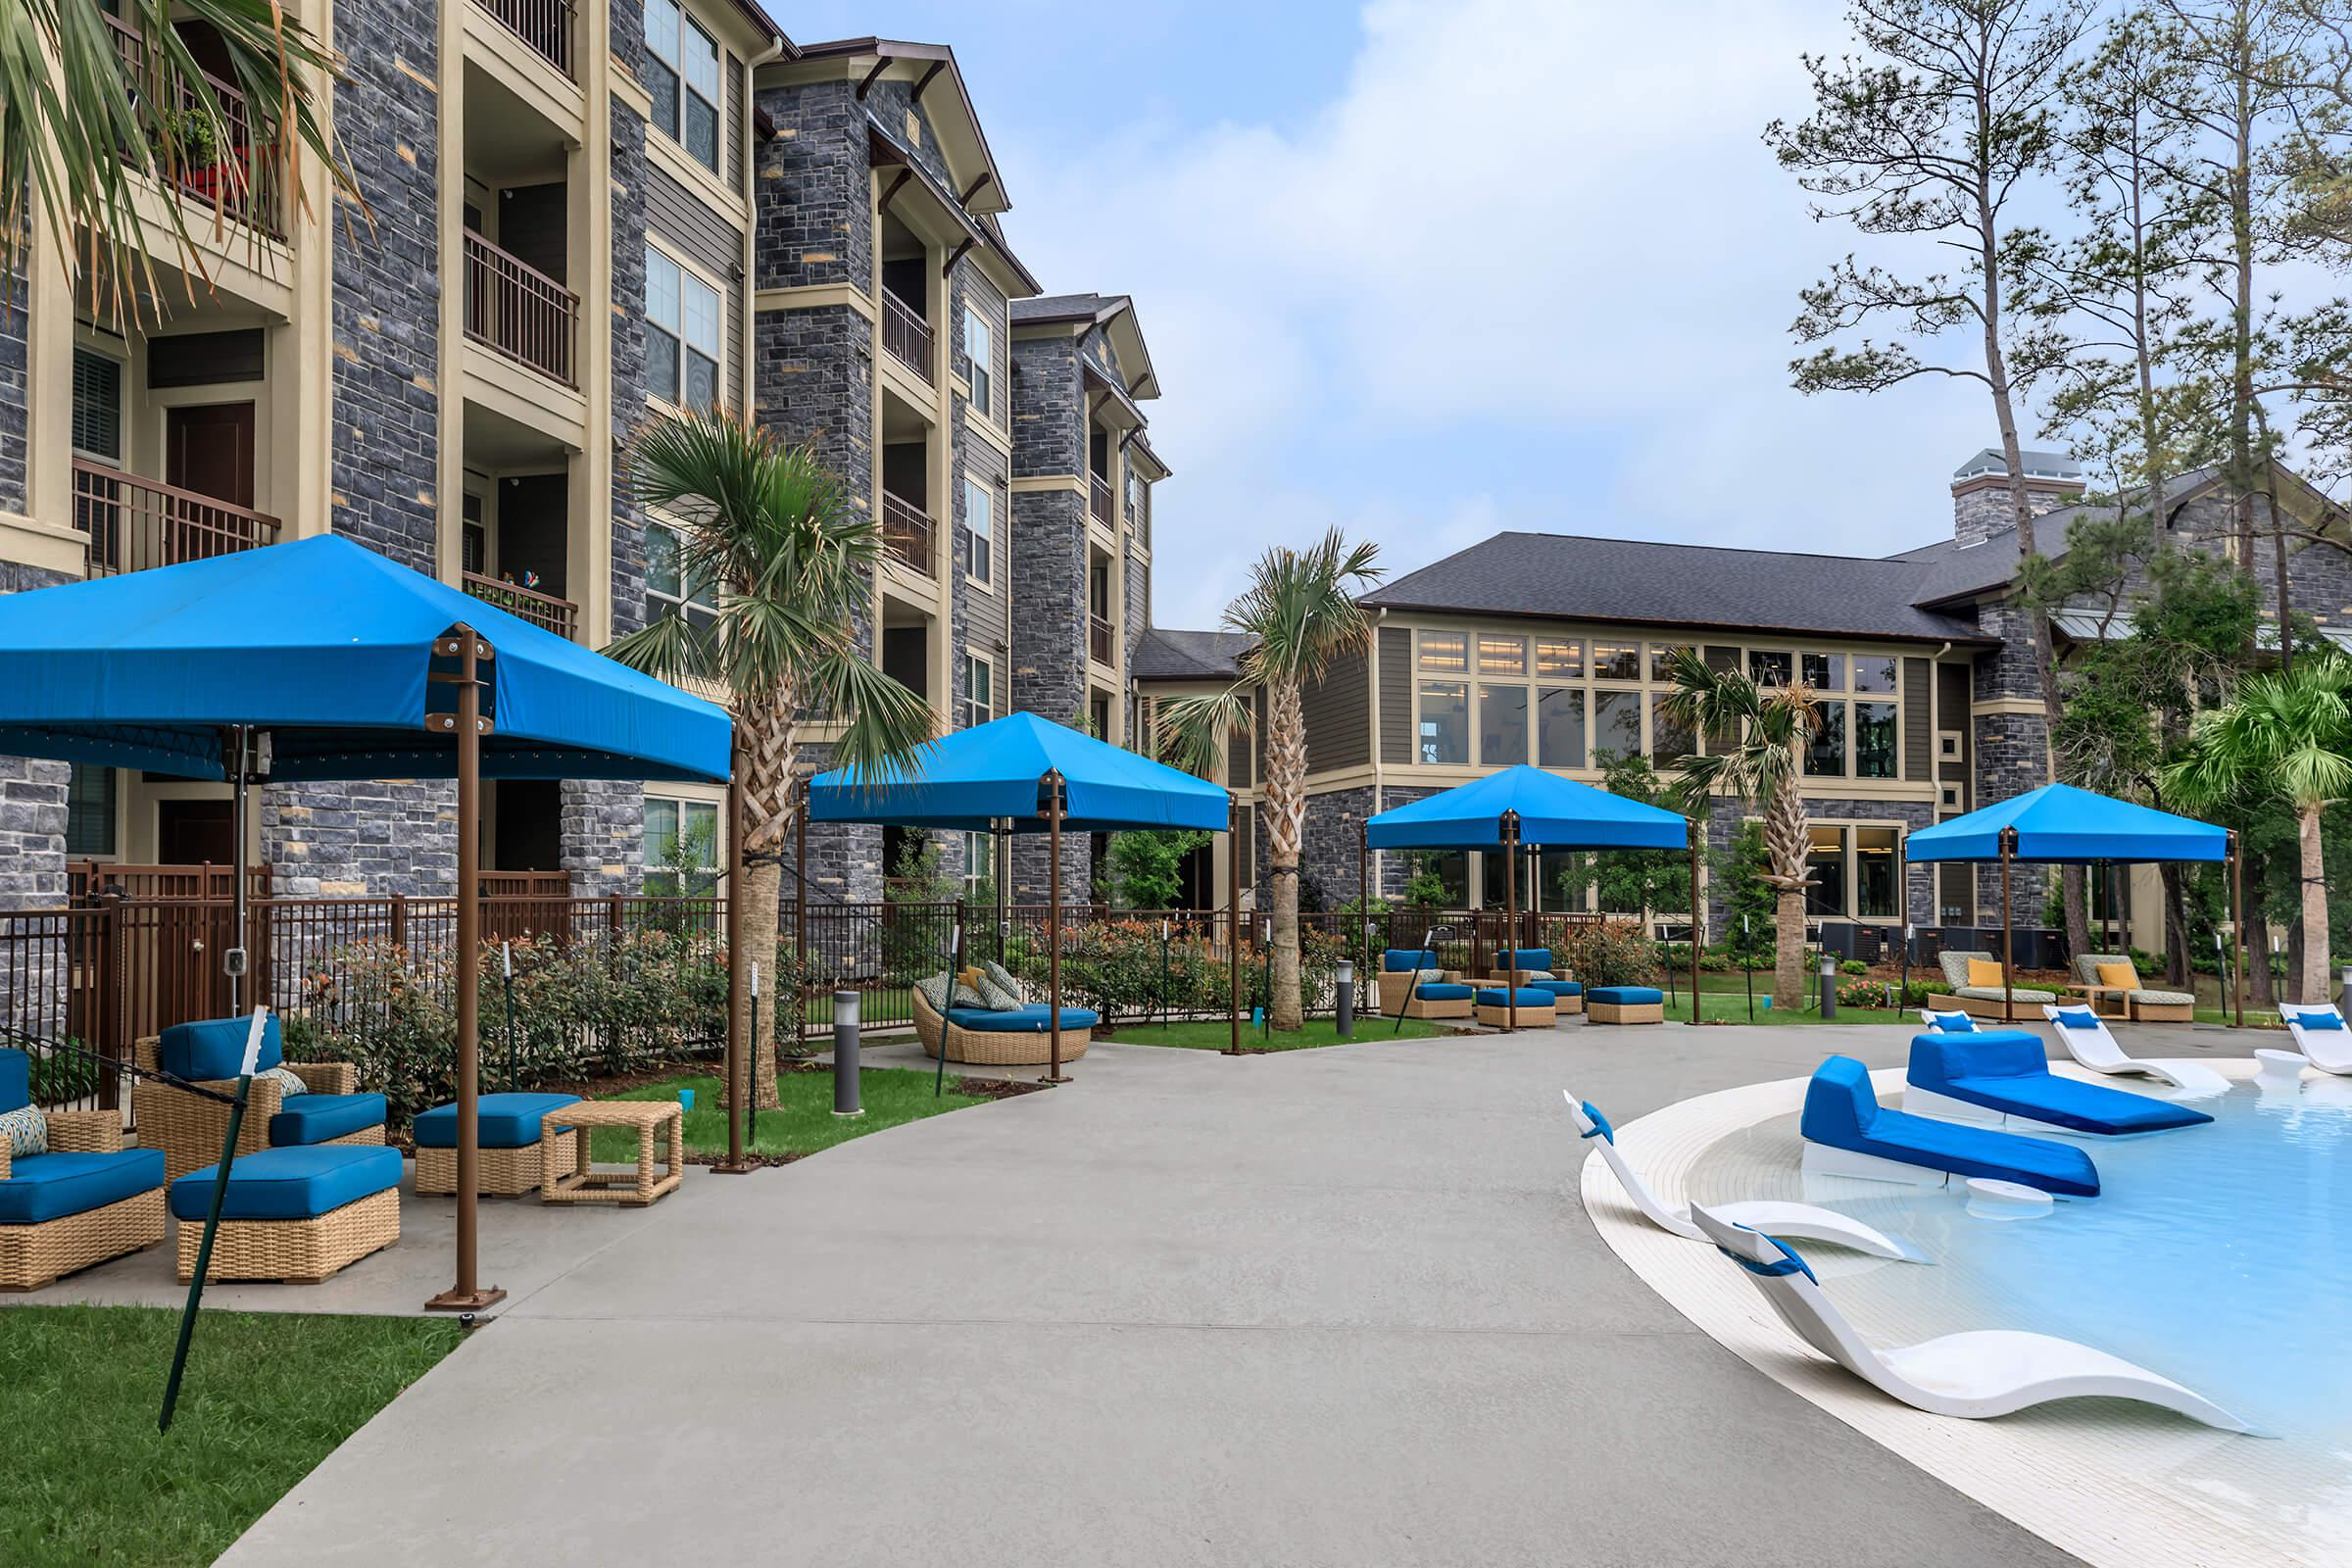 Cabanas in blue surrounding the beach entry area of our resort-style pool.